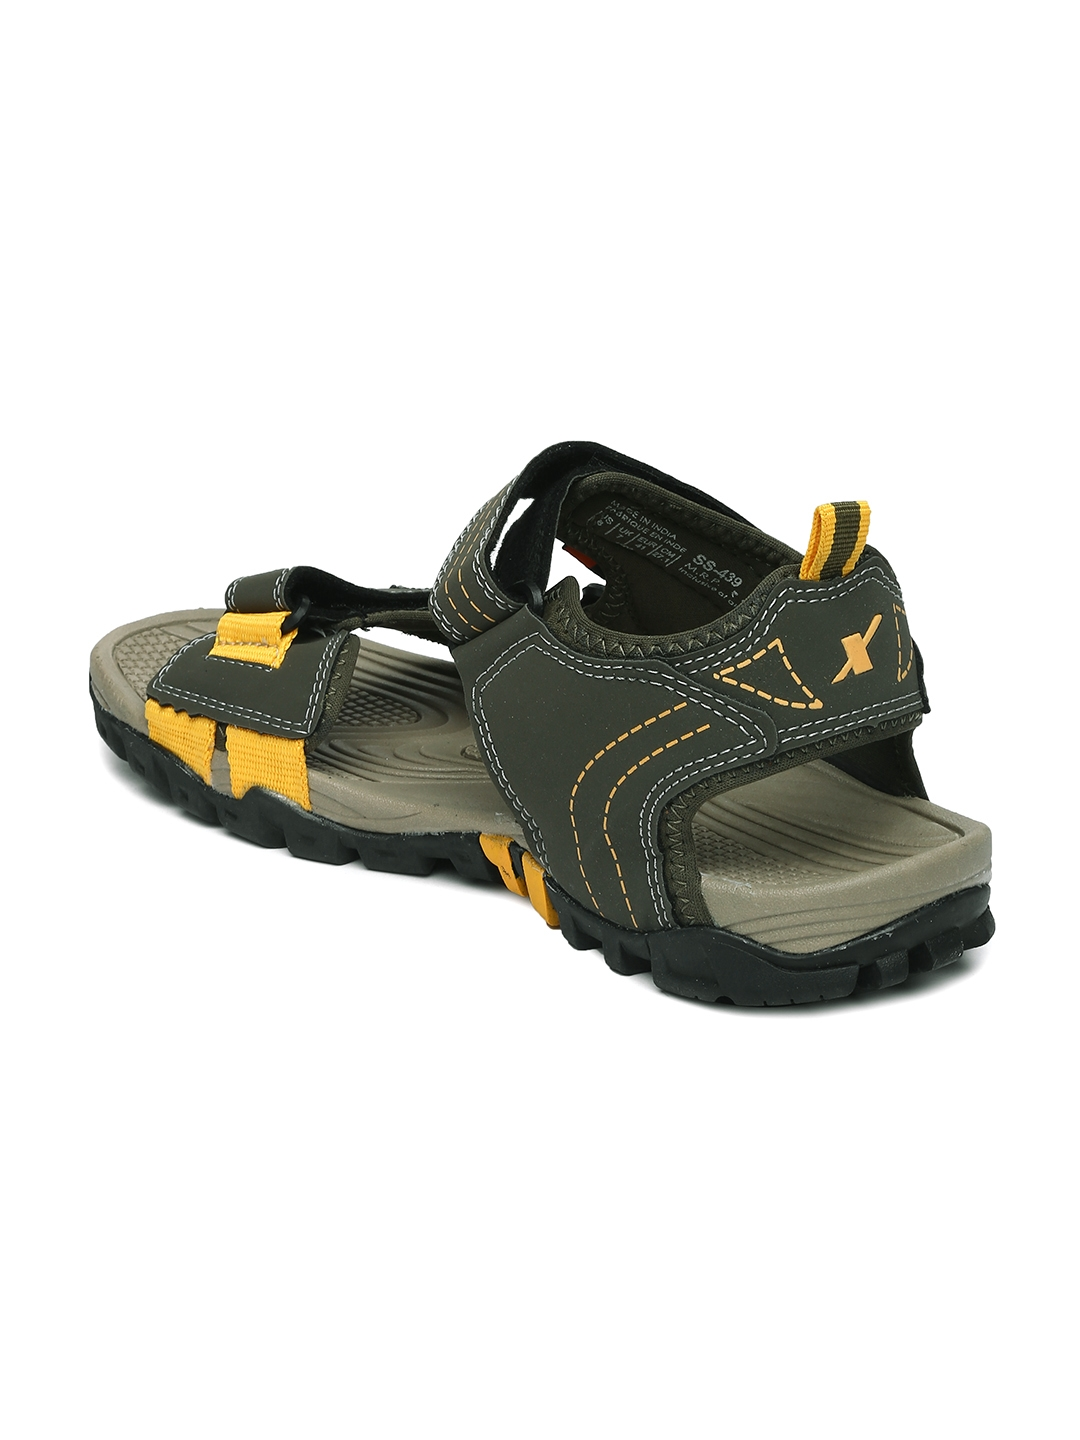 52df47d1a81377 Buy Sparx Men Olive Green   Yellow Sports Sandals - Sports Sandals ...